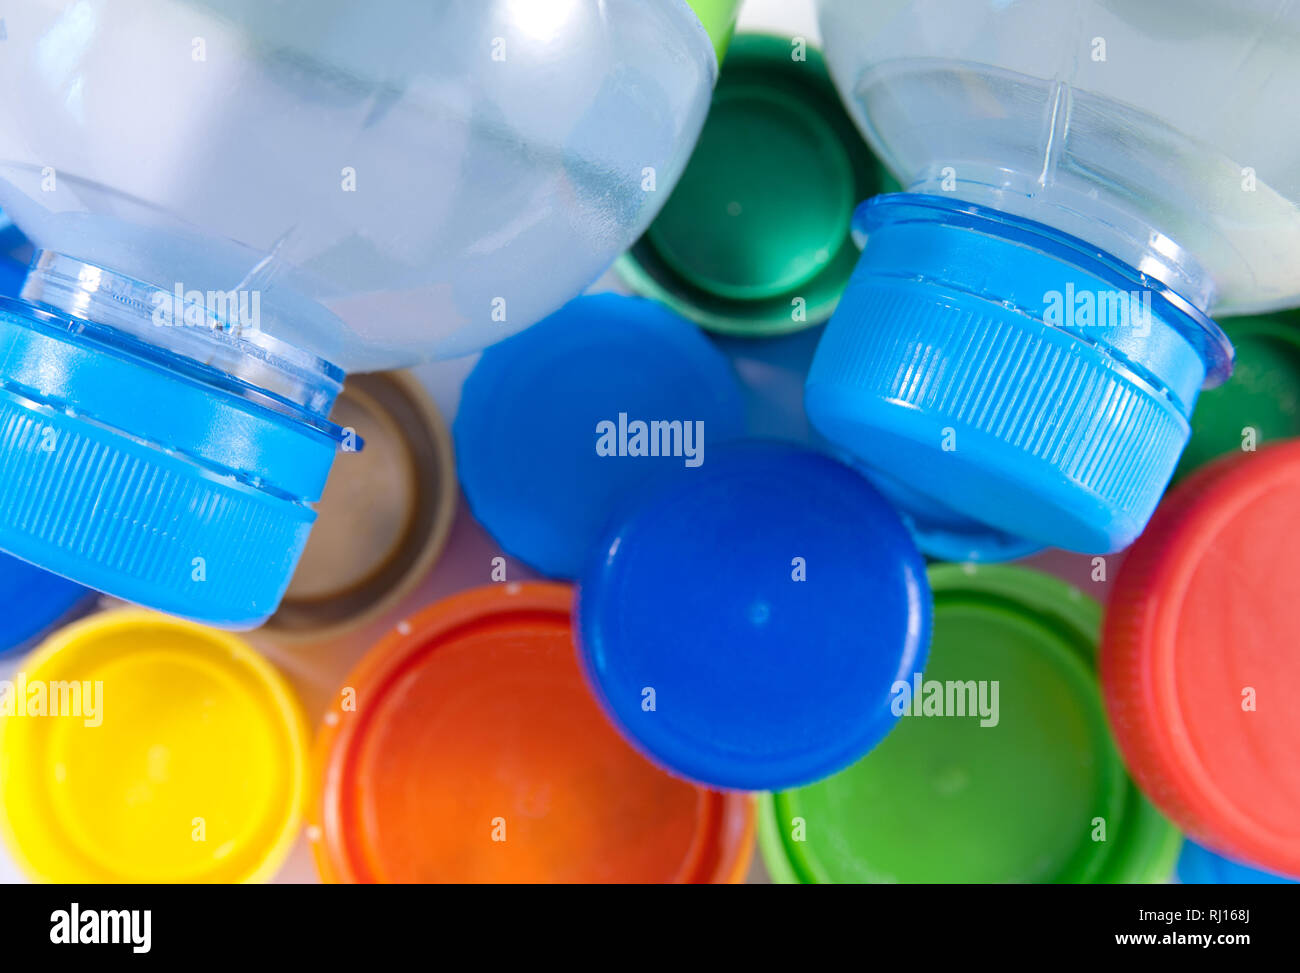 Two bottles of water and colorful covers. Closeup image - Stock Image